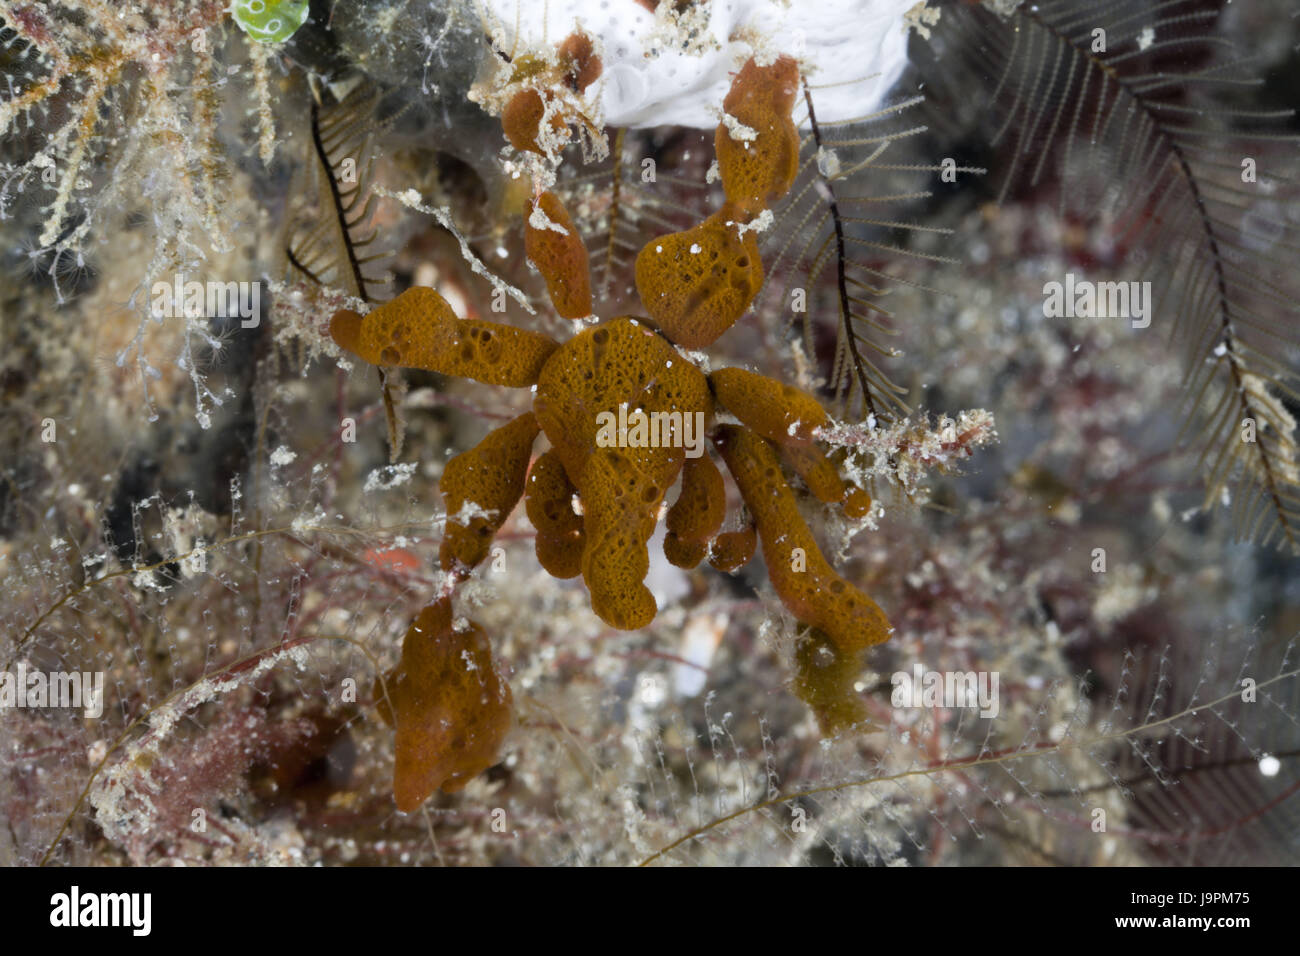 Spinning crab camouflages herself with fungus,Majidae,Lembeh Strait,the north Sulawesi,Indonesia, Stock Photo